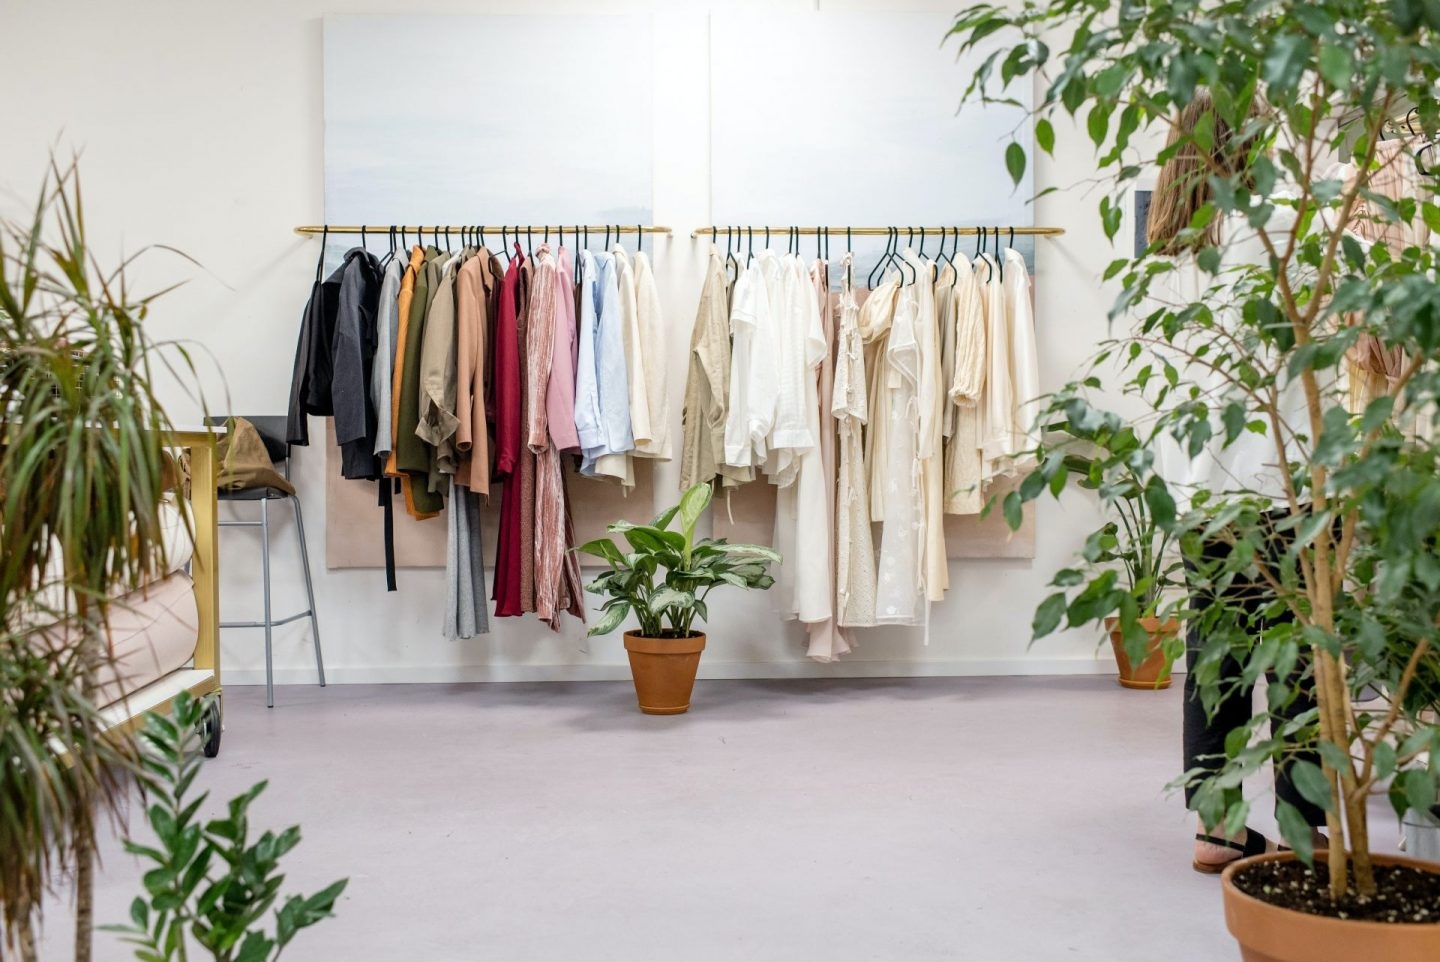 sustainable clothes hanging on a rail behind greenery